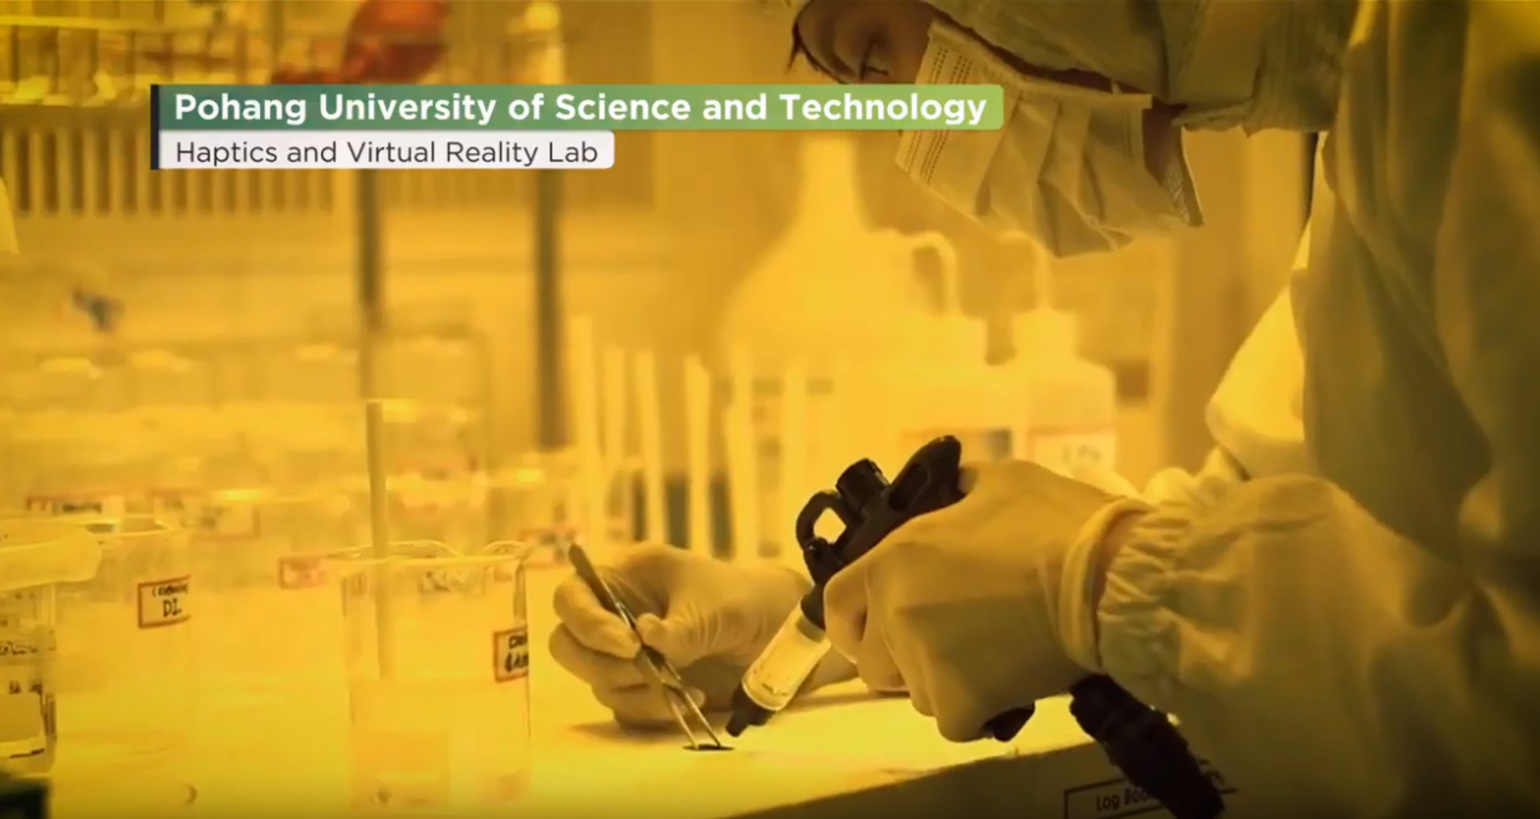 IROS TV 2019- Pohang University of Science and Technology- Haptics and Virtual Reality Laboratory